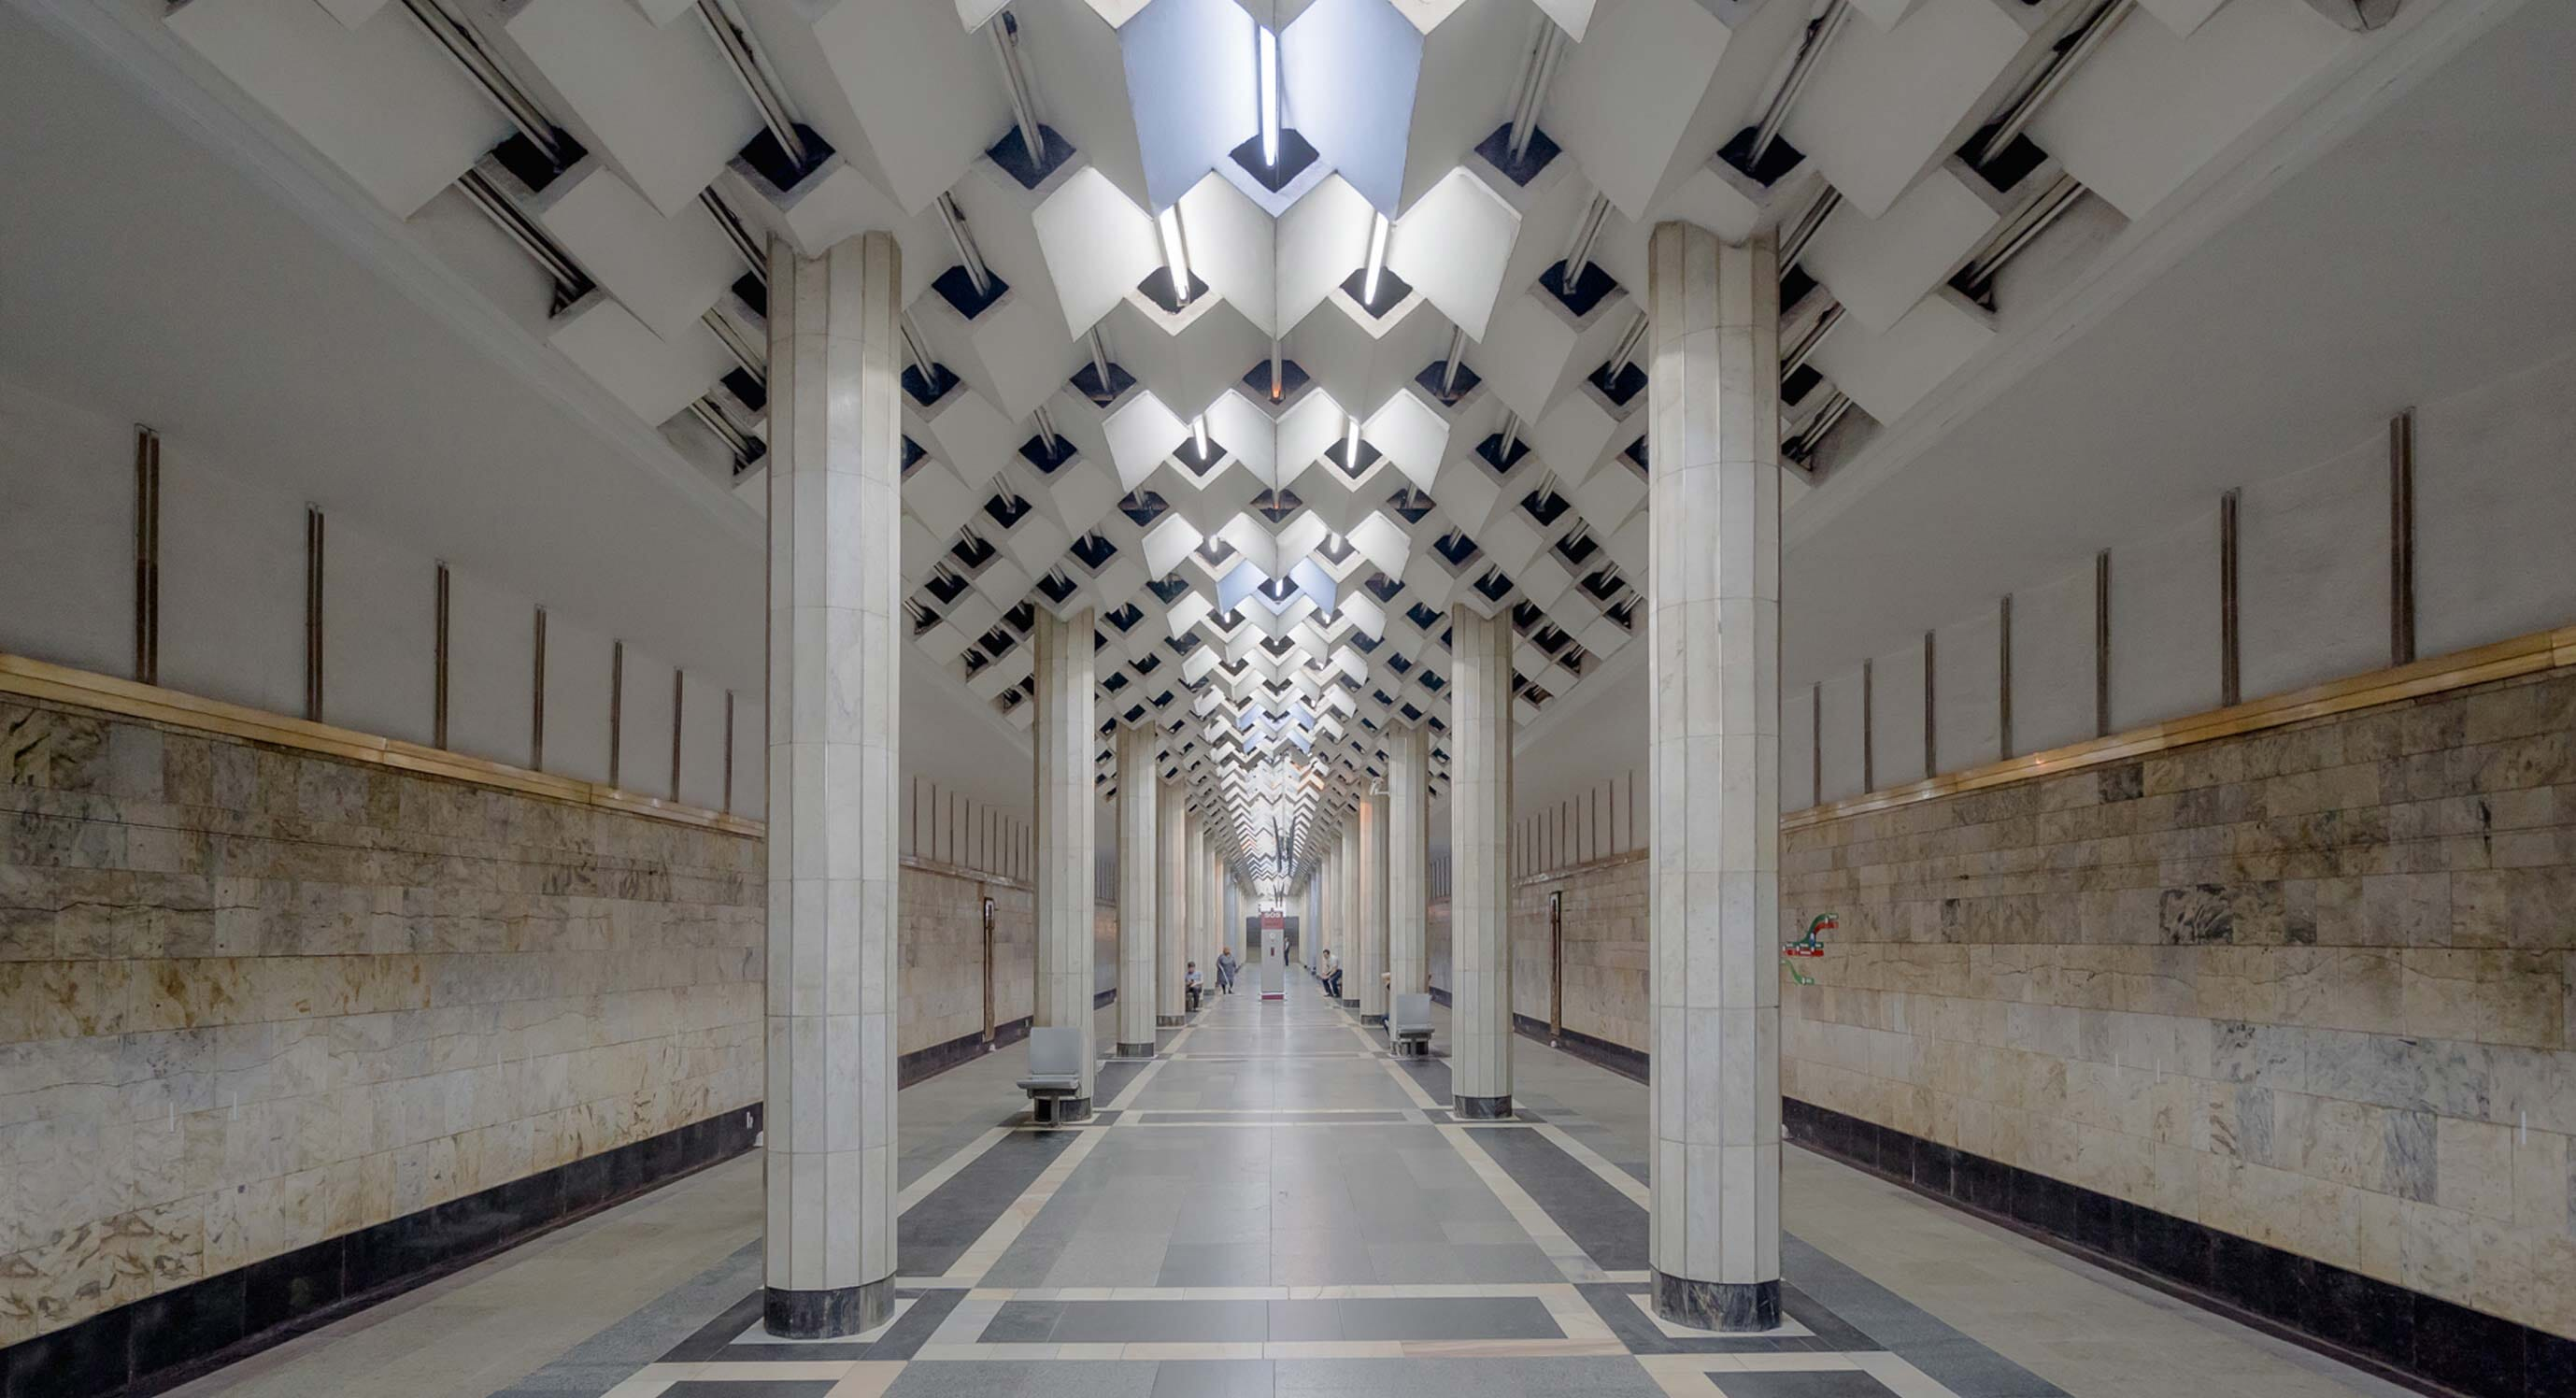 Christopher Herwig's new series is a tour of Soviet metro stations